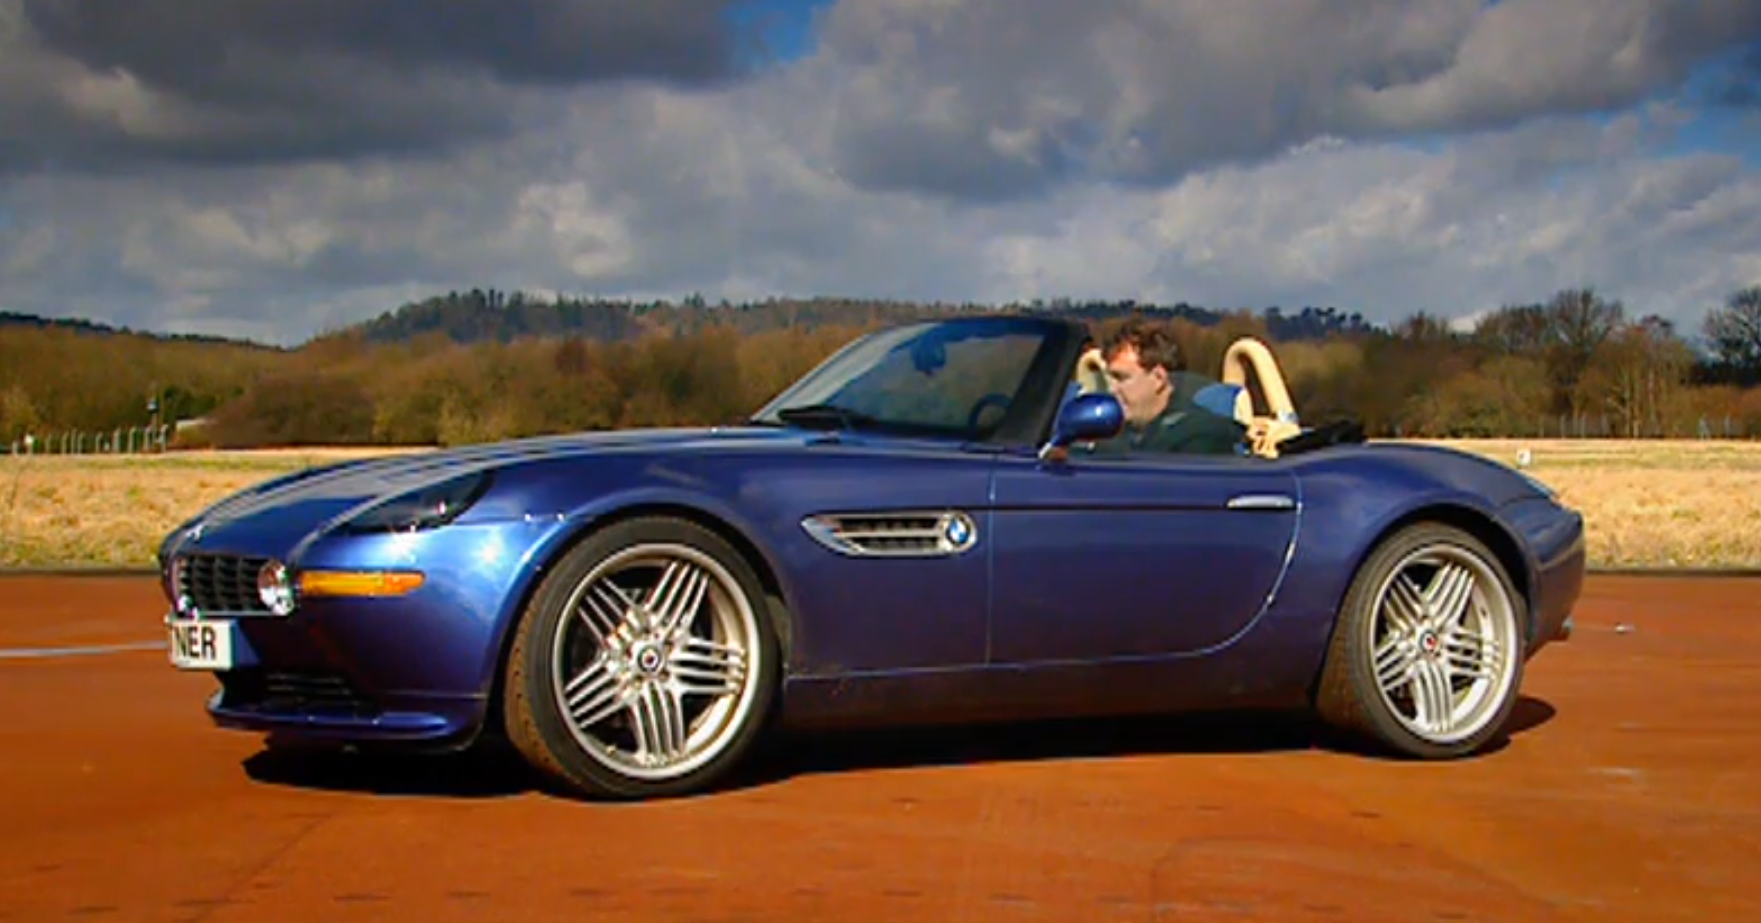 Black Stig Tests The Alpina Z8 Roadster On Top Gear